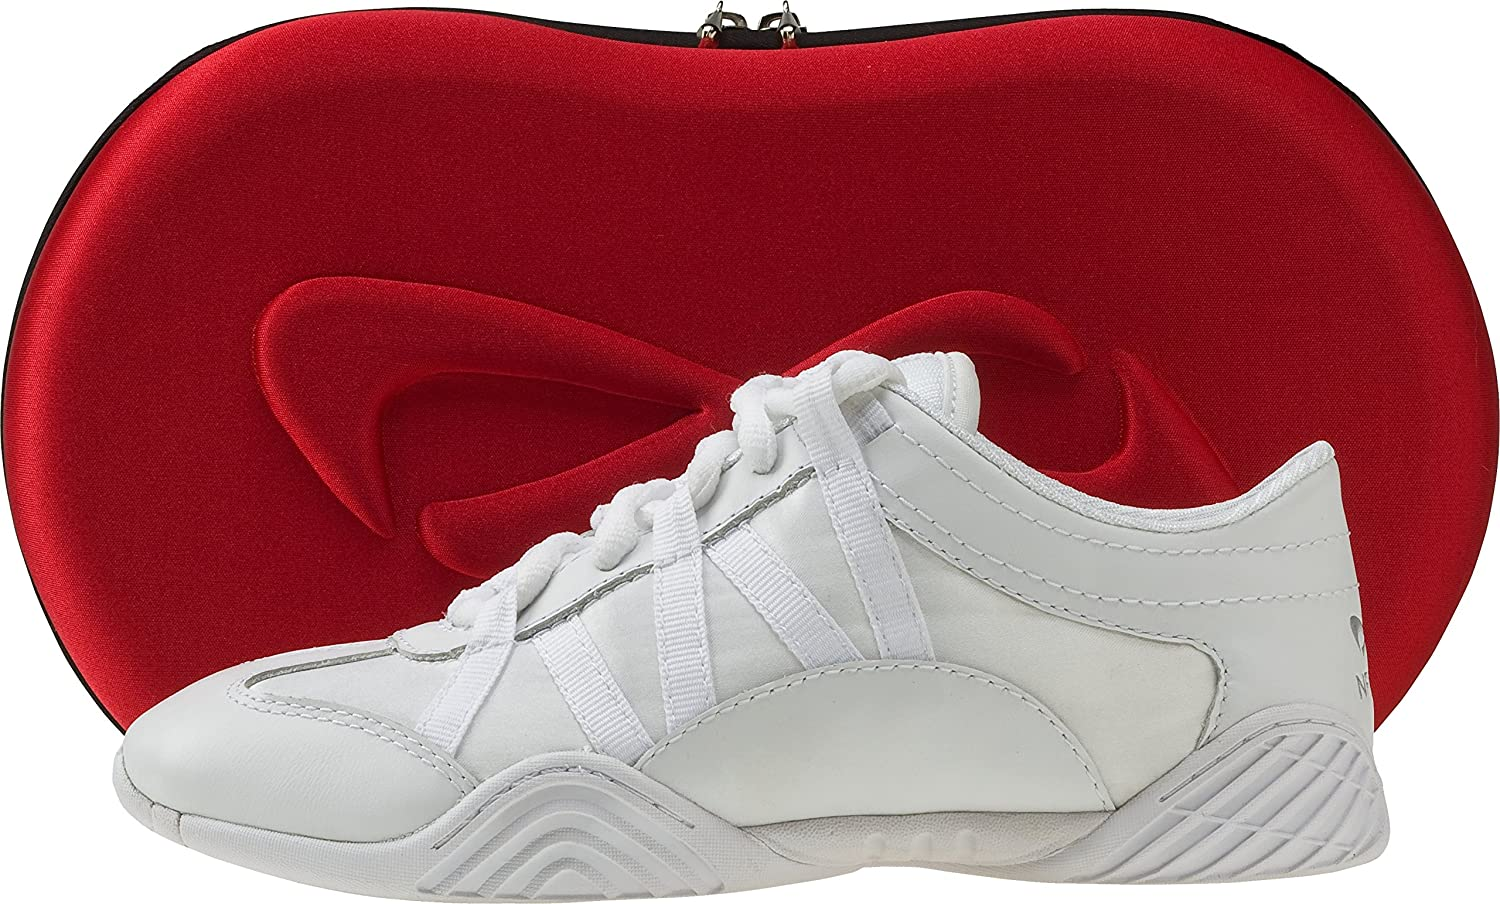 Nfinity Youth Evolution Cheer Shoes B003ZVK736 Y13|White